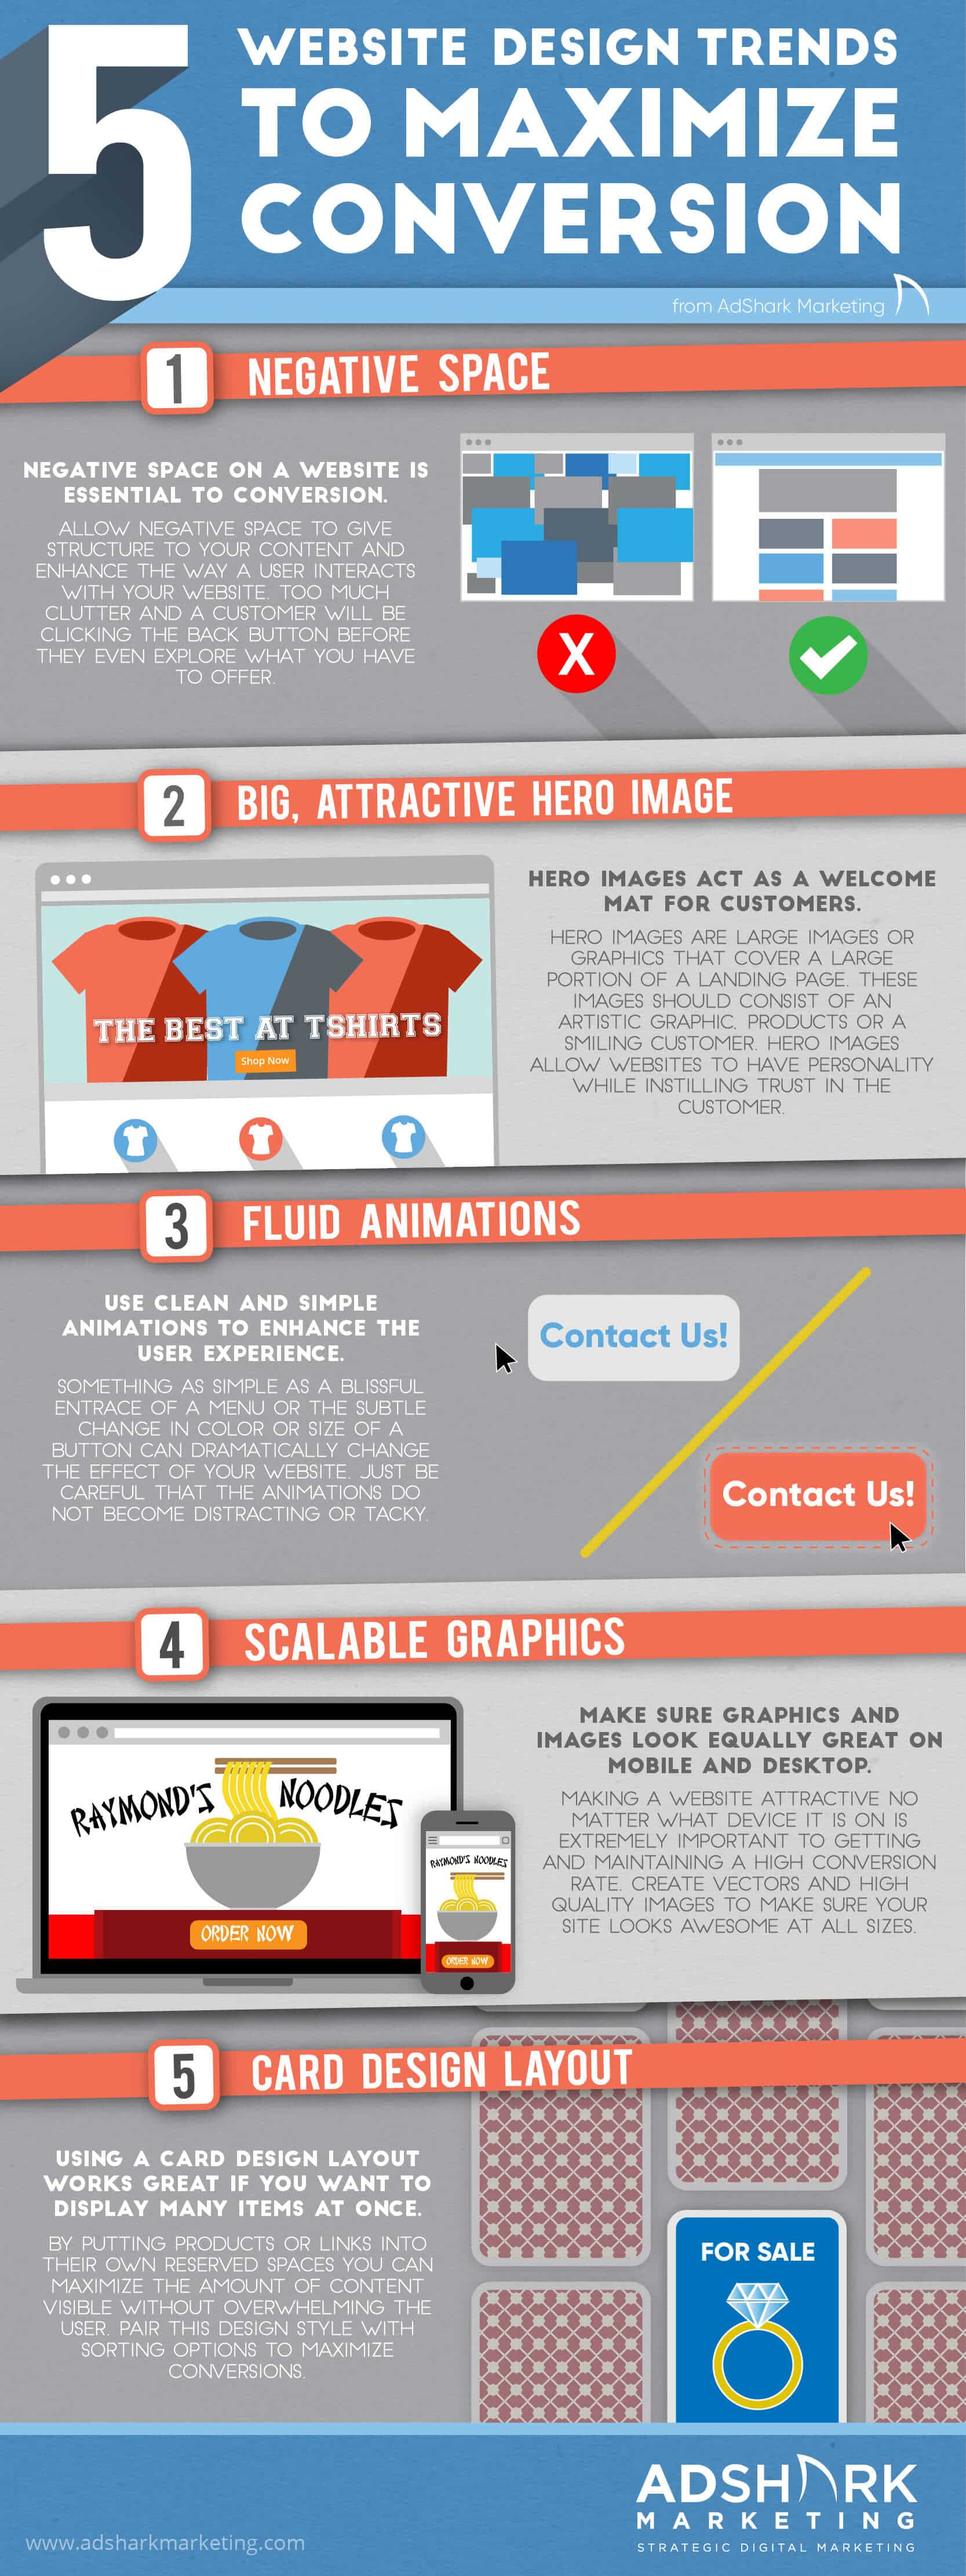 5 Website Design Trends to Maximize Conversion Infographic